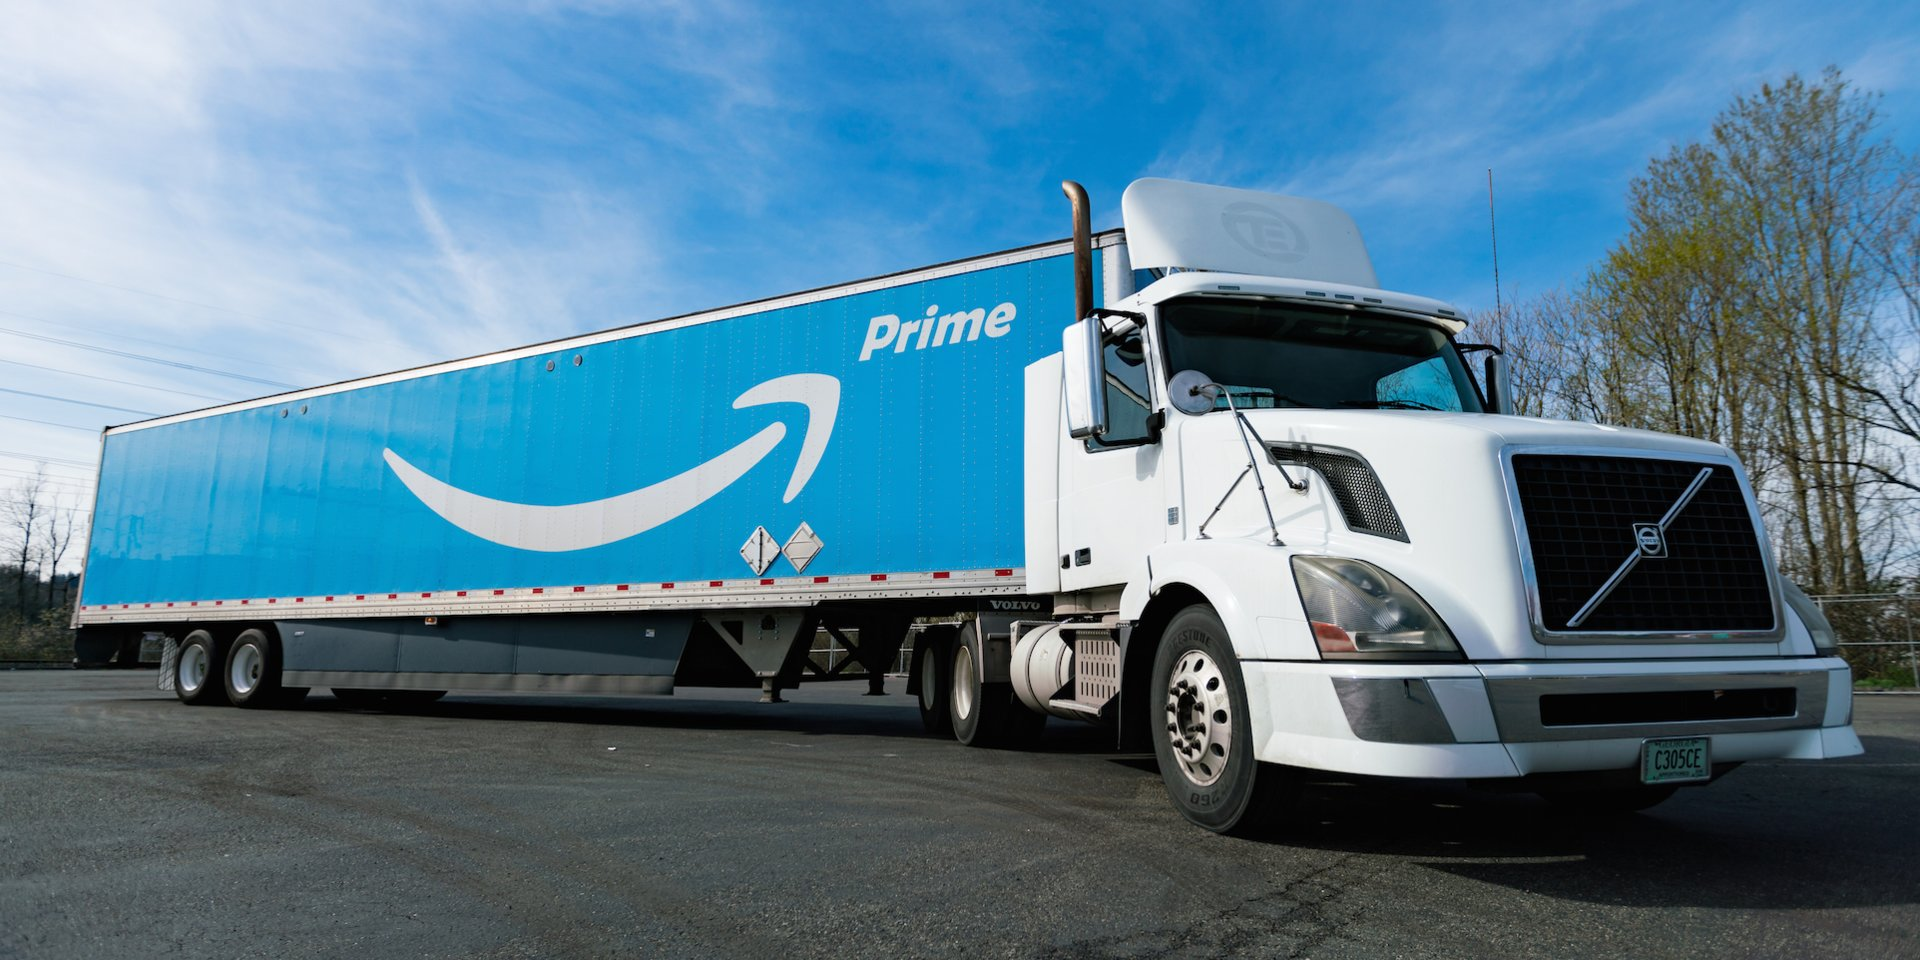 From electric vans to autonomous robots, here are all the vehicles Amazon has and will use to deliver packages to your doorstep (AMZN)